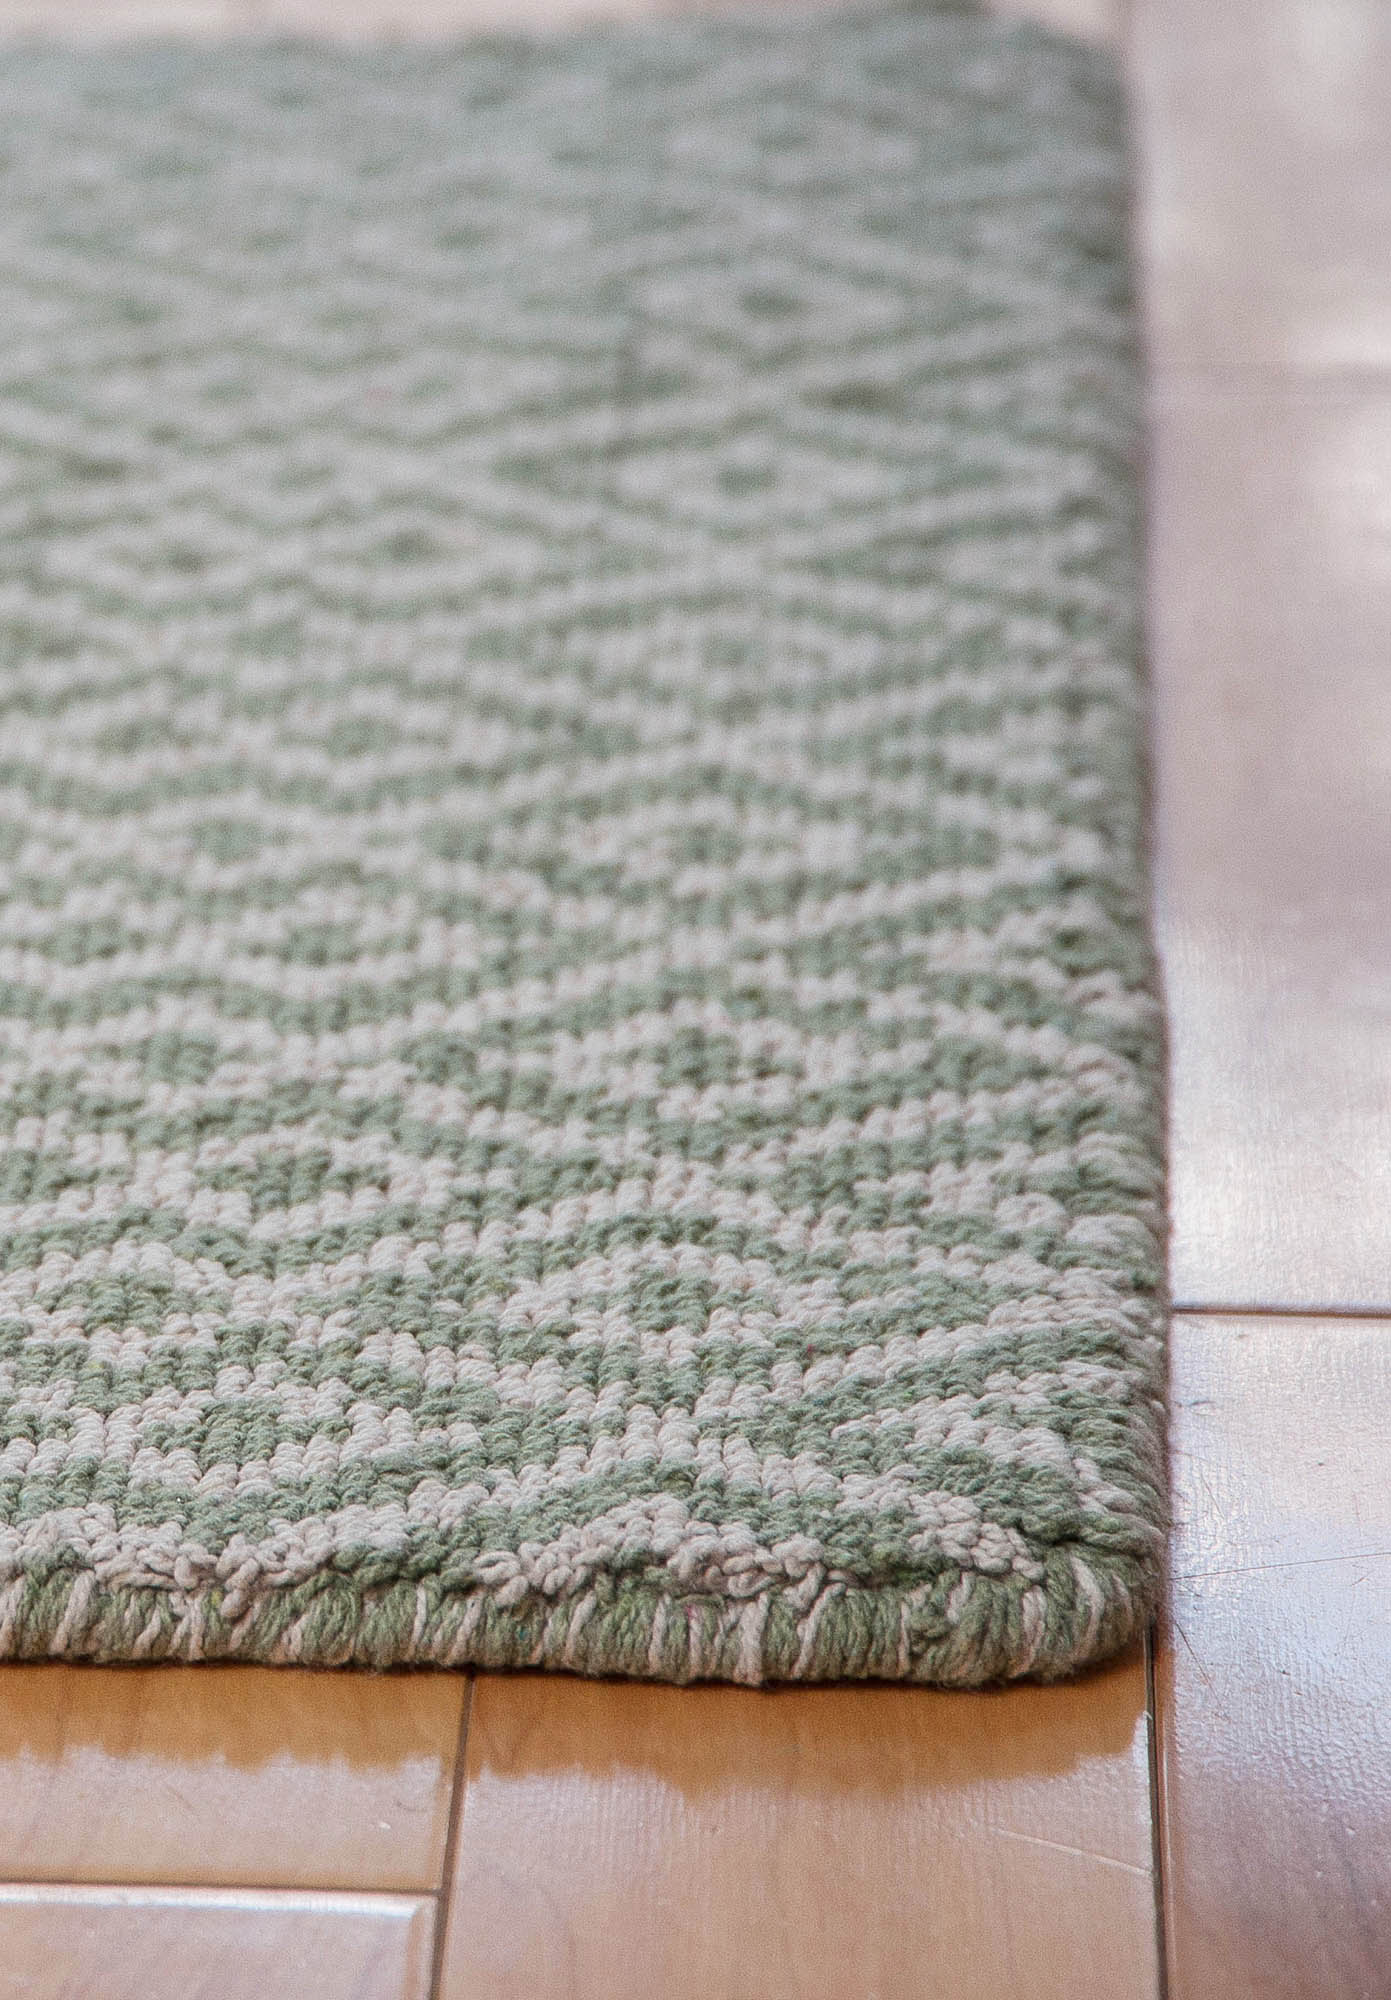 Barcelona Green Natural Eco Cotton Loom Hooked Rug Hook